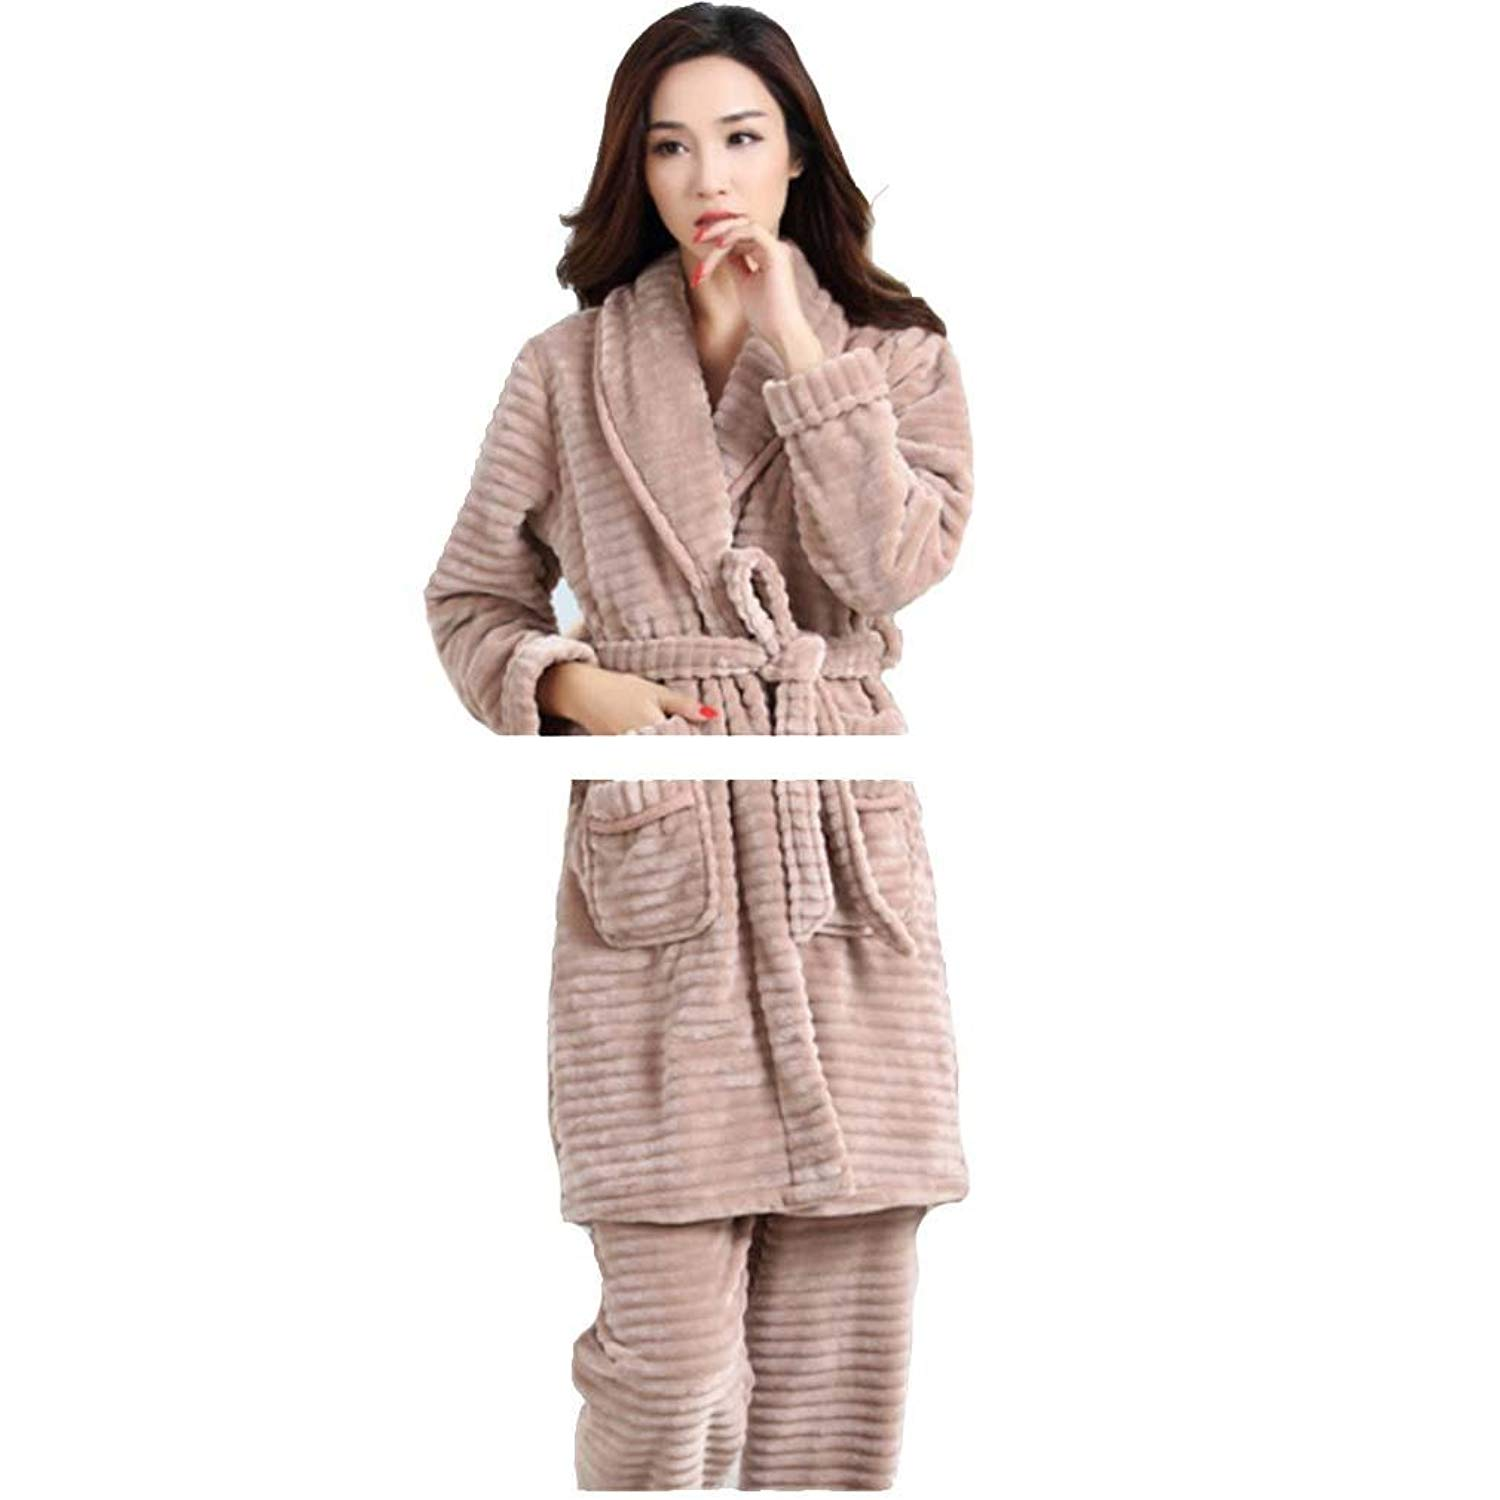 b2a09b191d Get Quotations · moxin Bathrobe Women s Flannel Terry Bath Robe Dressing  Gowns Nightwear Robe Men Terry Towel Bathrobe Dressing